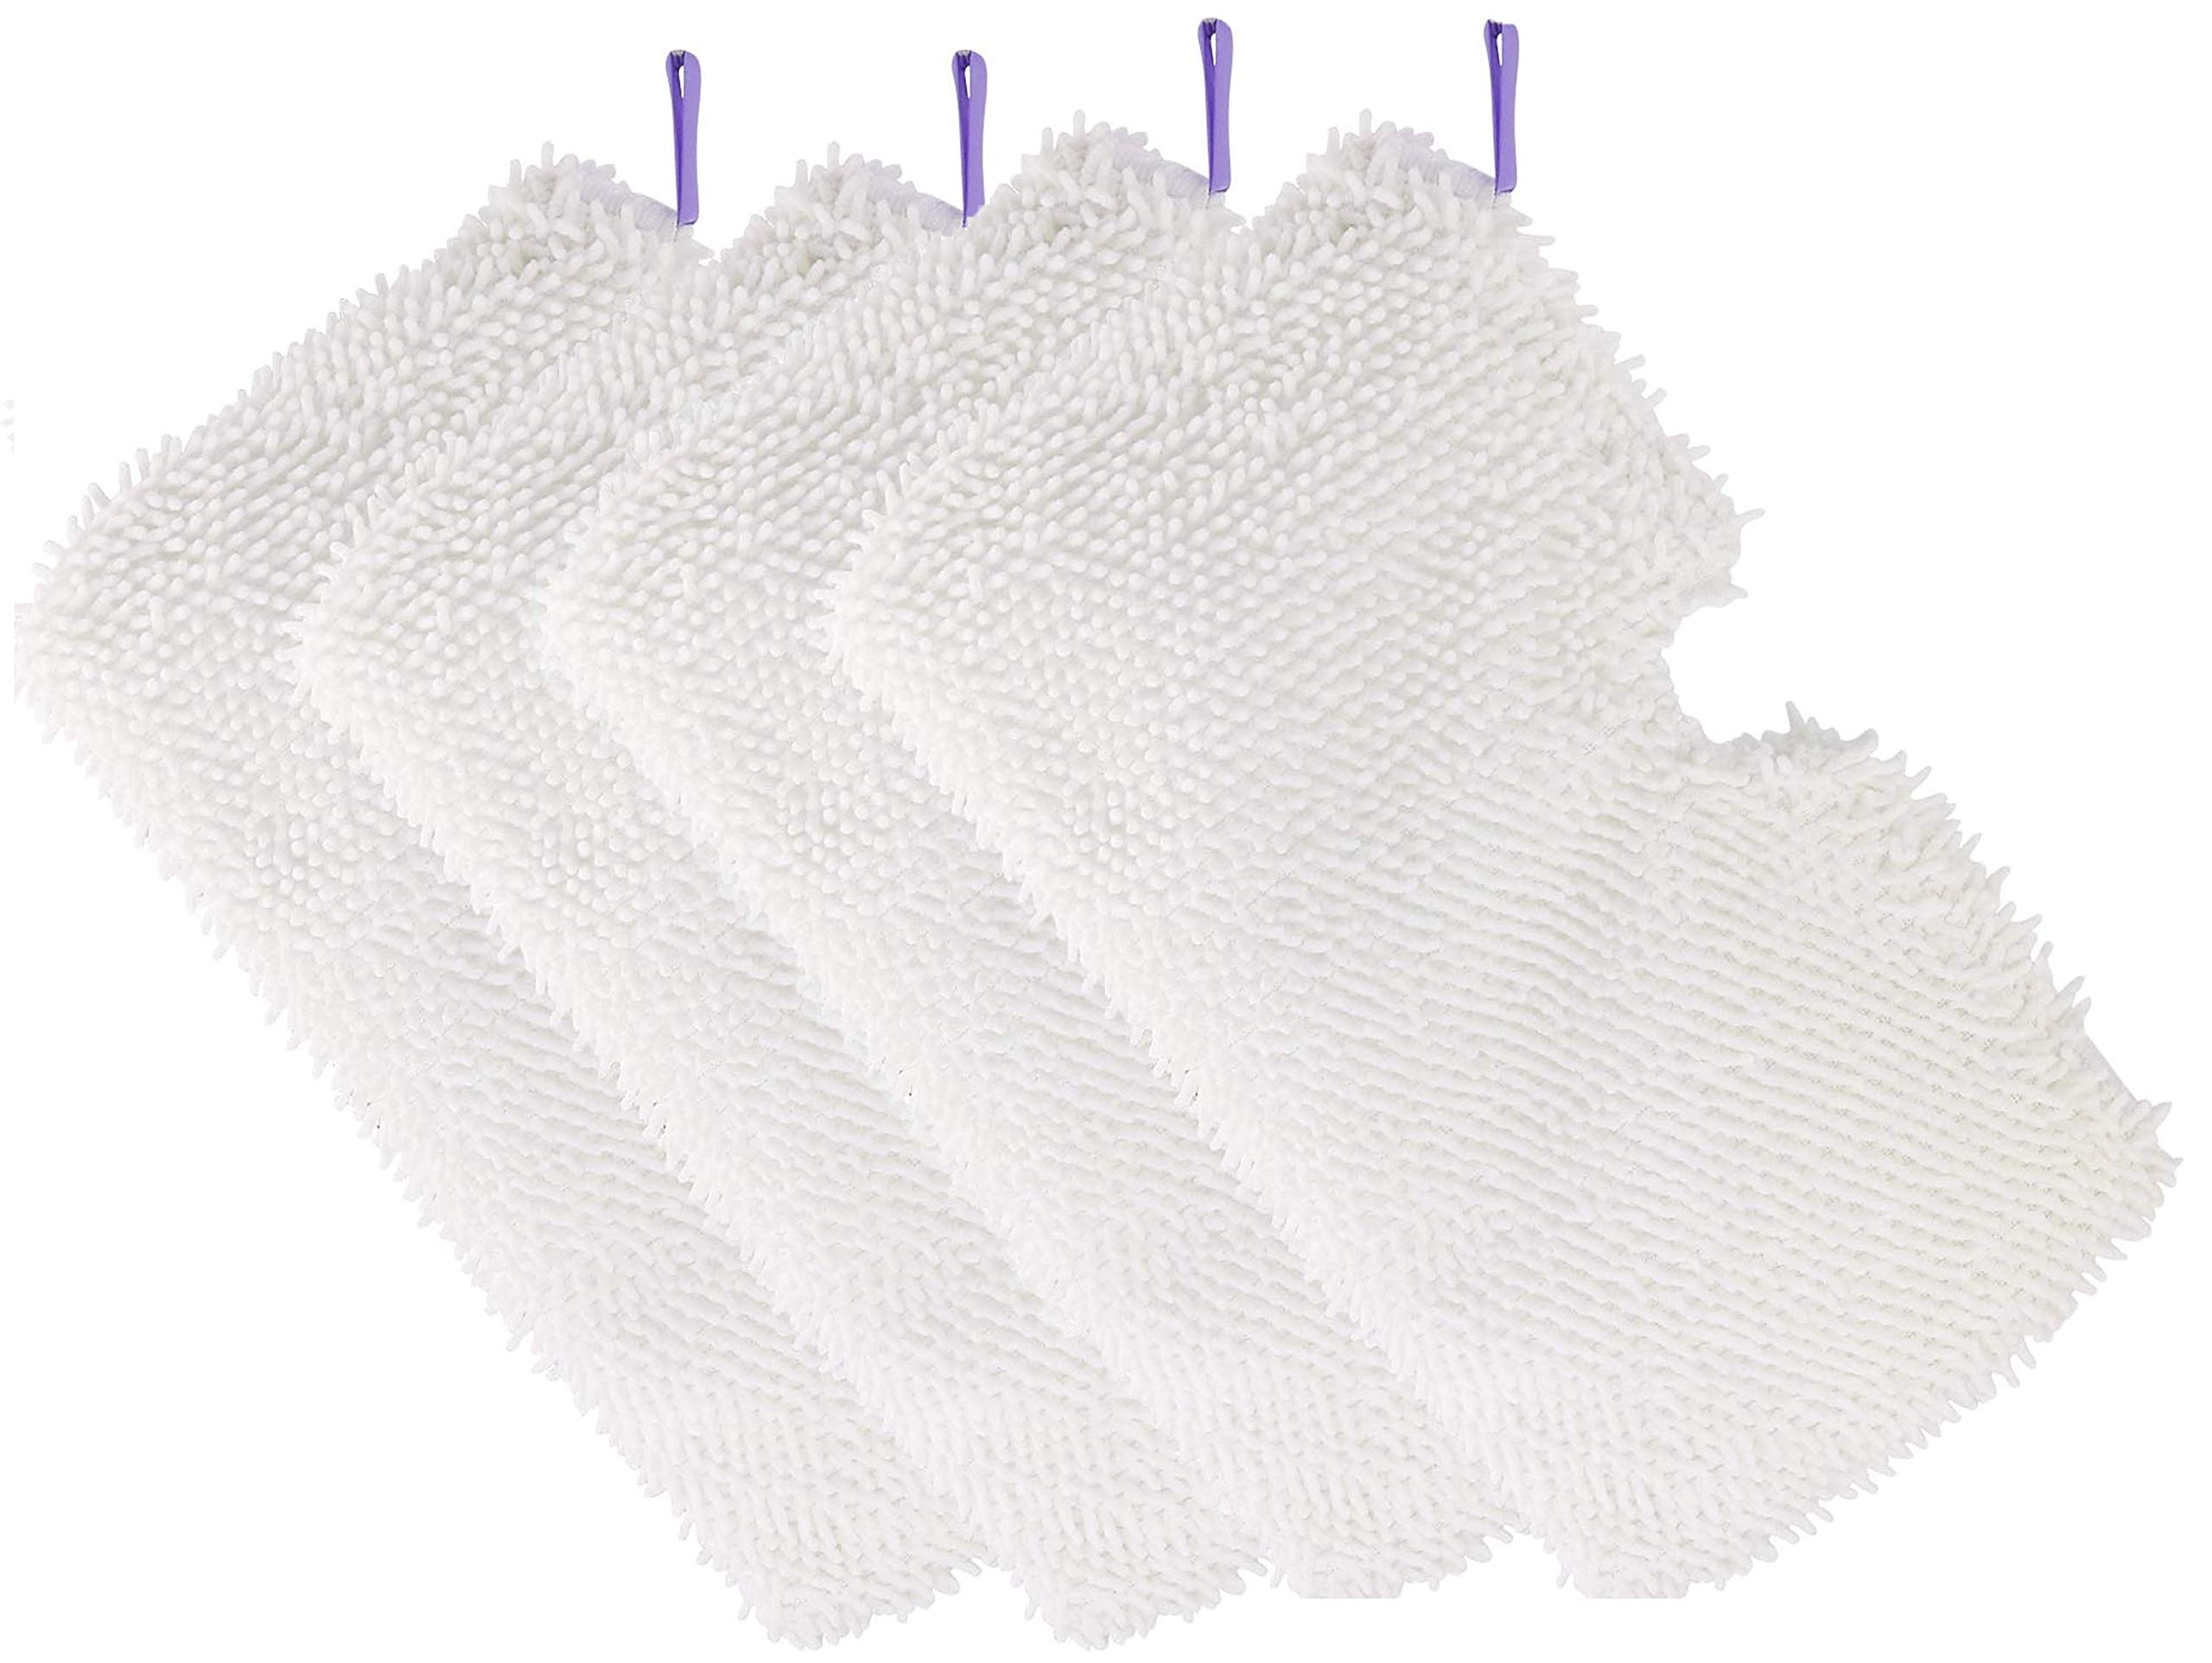 4 Pack Microfiber Steam Mop Replacement Pads, Machine Washable Cleaning Pads for Shark Steam Pocket Mops S3500 Series S3501 S3601 S3550 S3901 S3801 SE450 S3801CO S3601D-White by Tidy Monster